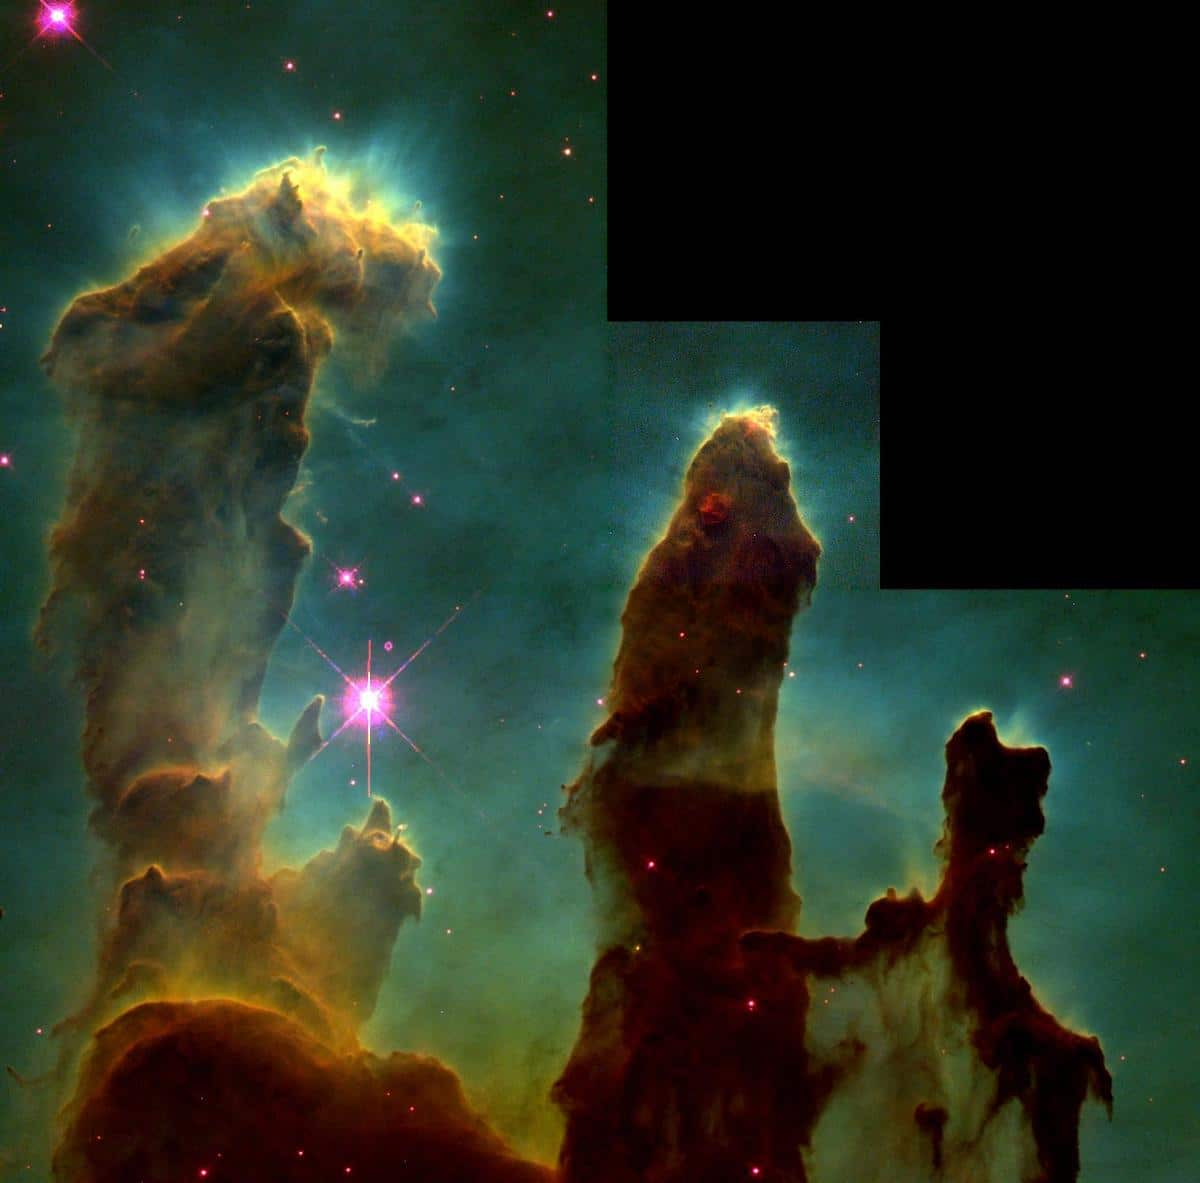 Pillars of Creation 1995 Hubble Telescope Photo